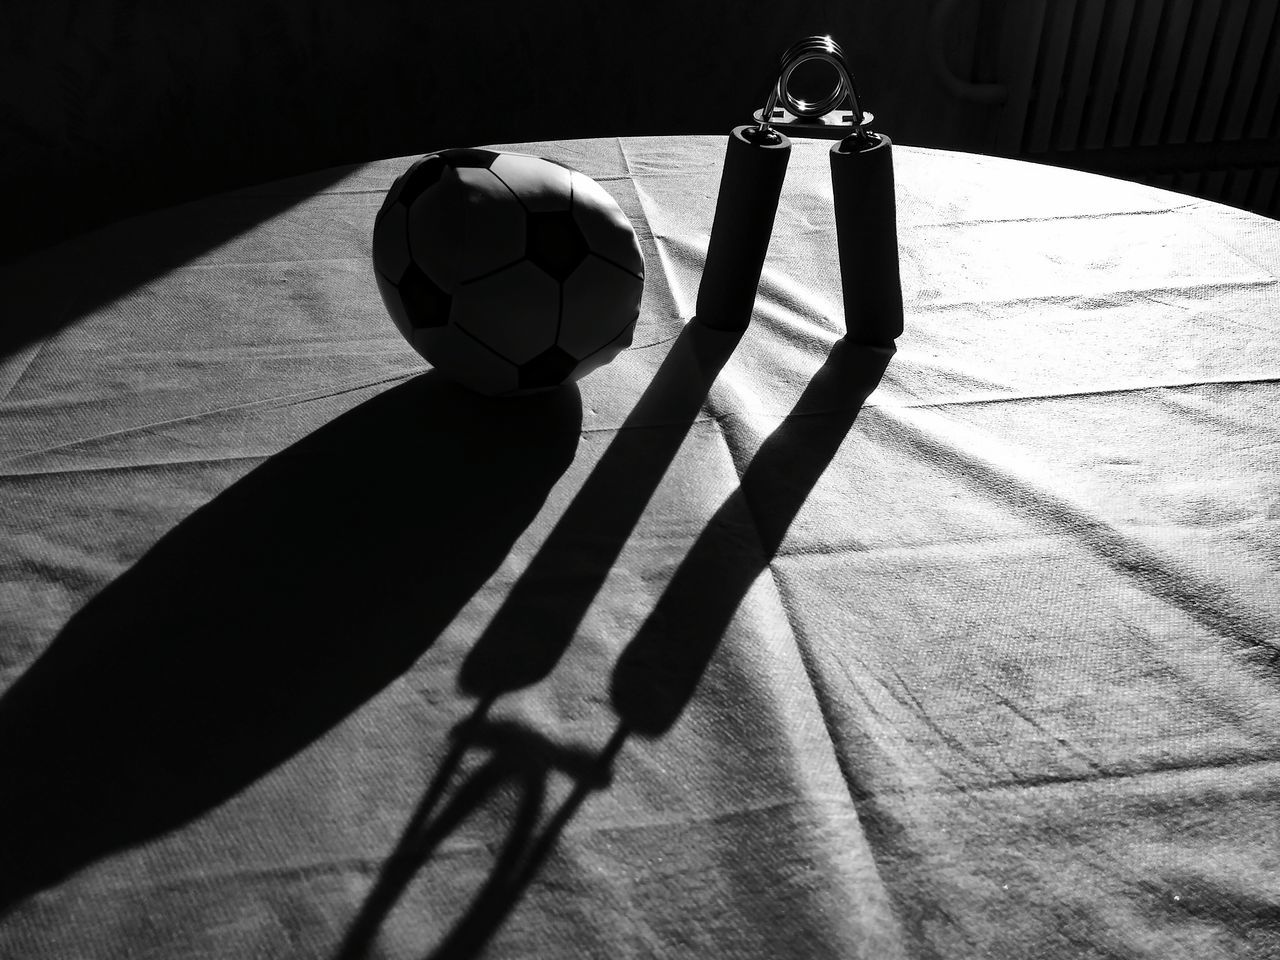 Shadow Sunlight Leisure Activity Close-up Indoors  No People Ball Golf Club Day Light And Shadow Blackandwhite Blsckandwhite Black And White Minimalism EyeEmNewHere Sport